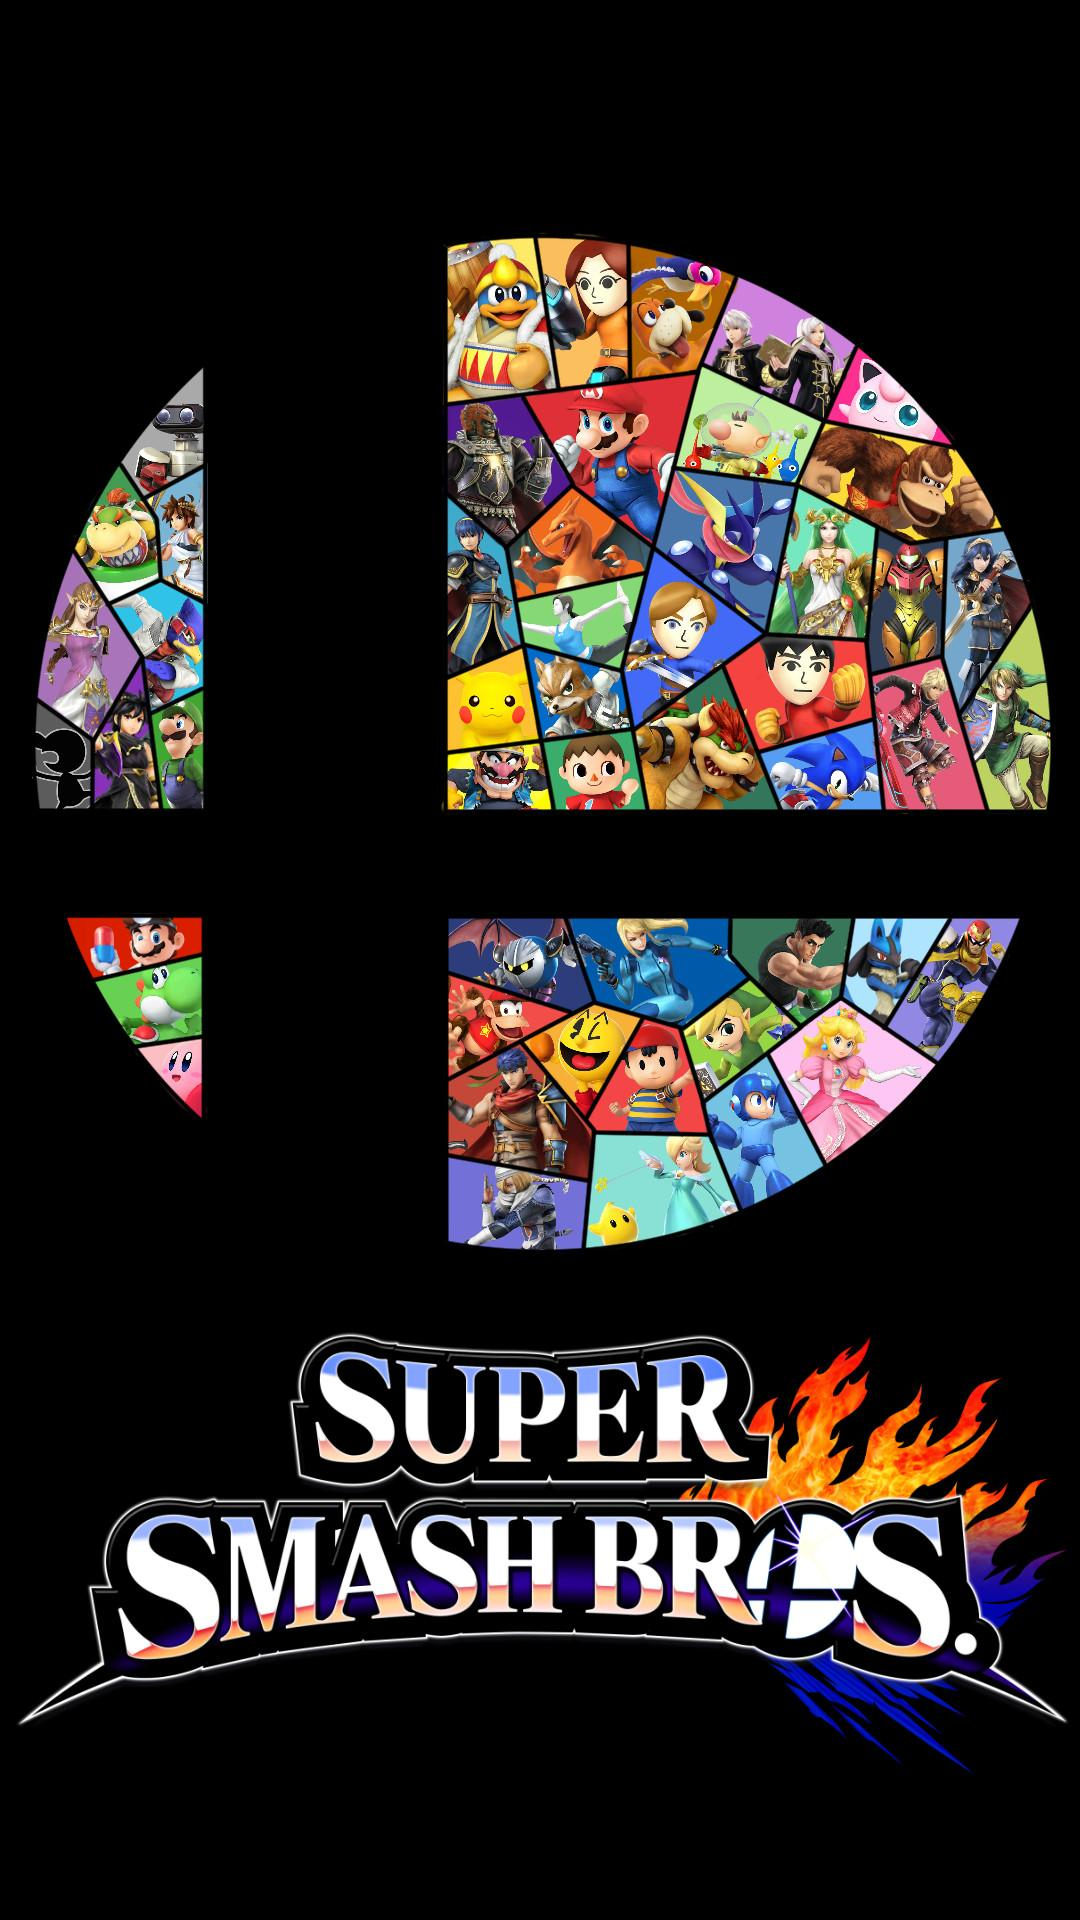 Smash Bros Android Wallpapers - Wallpaper Cave